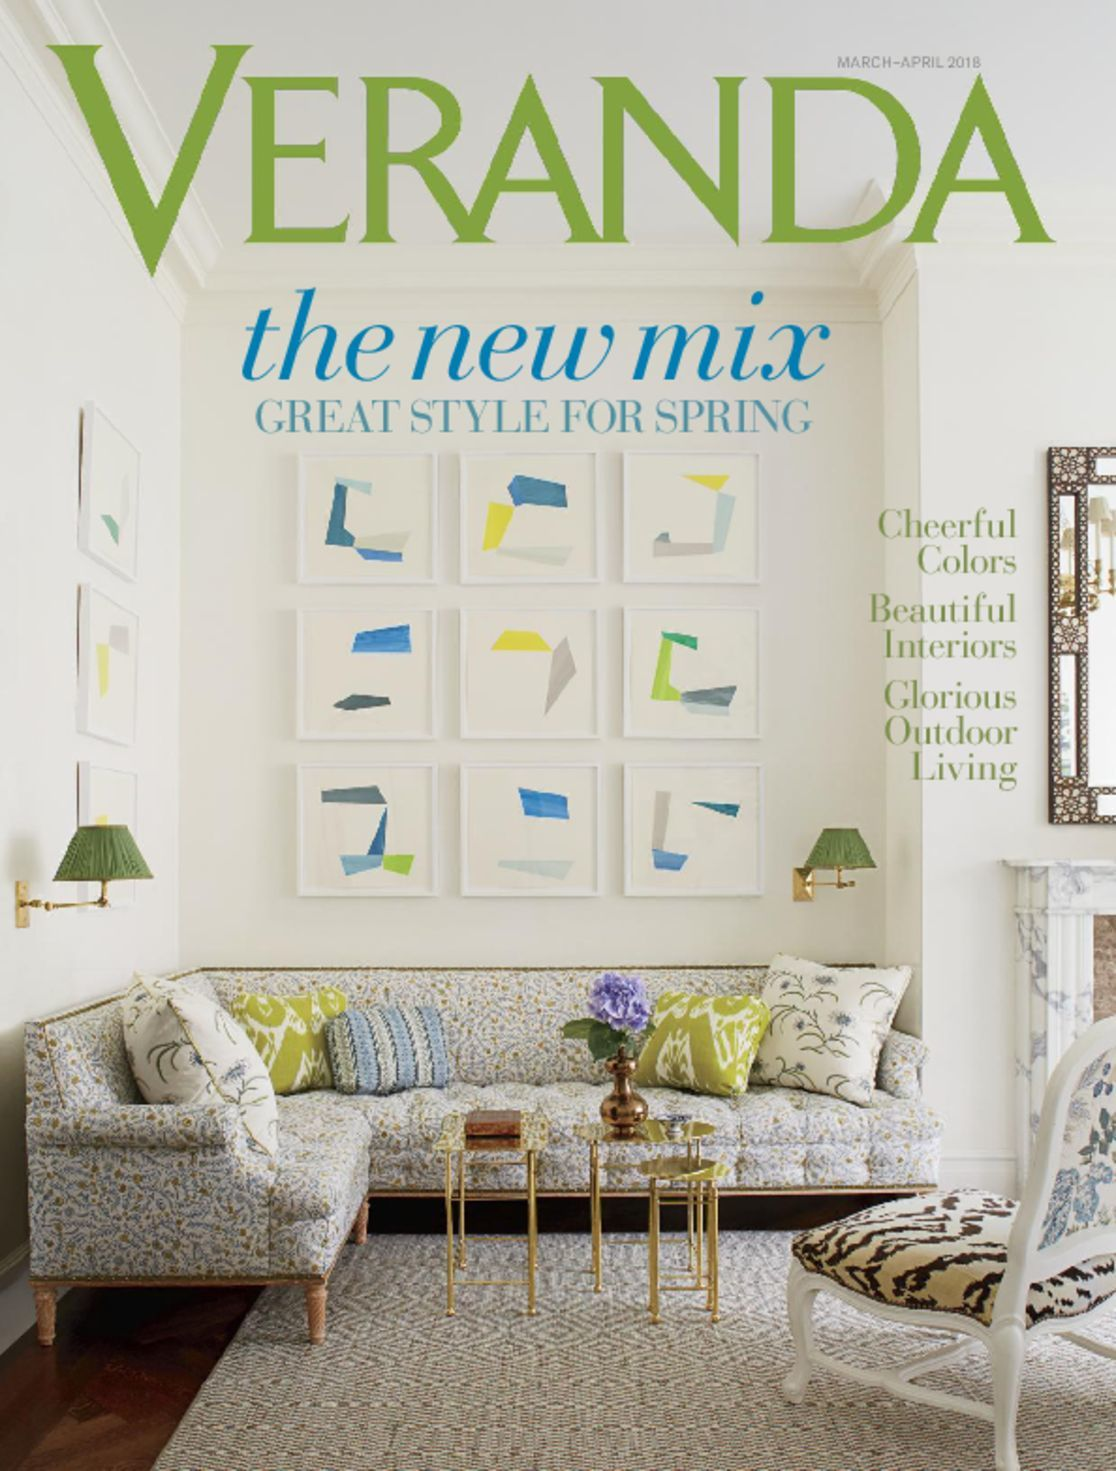 Veranda Magazine | Lifestyle at Its Finest - DiscountMags.com